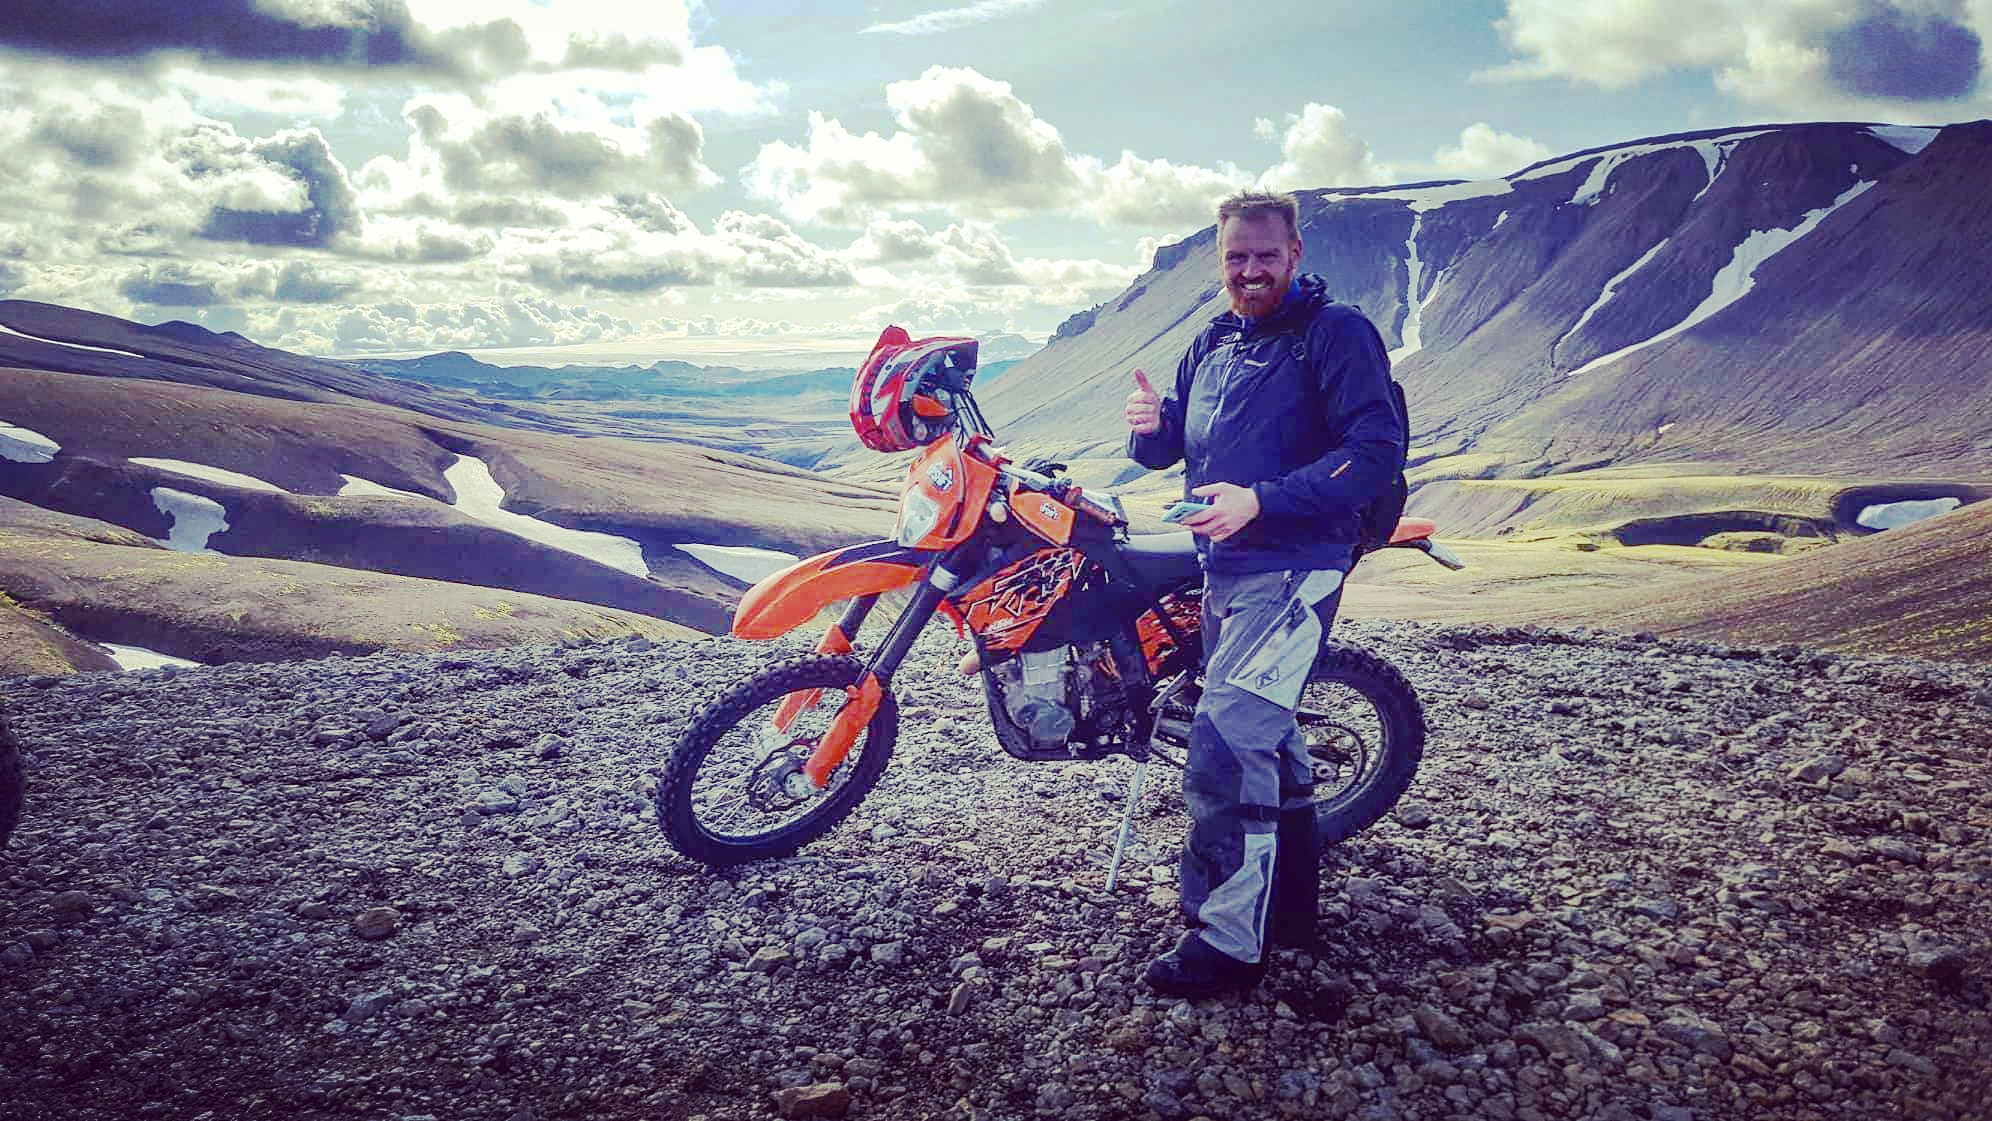 Wide valleys seen fron high above are a great reason to join a dirt bike tour in the Icelandic highlands